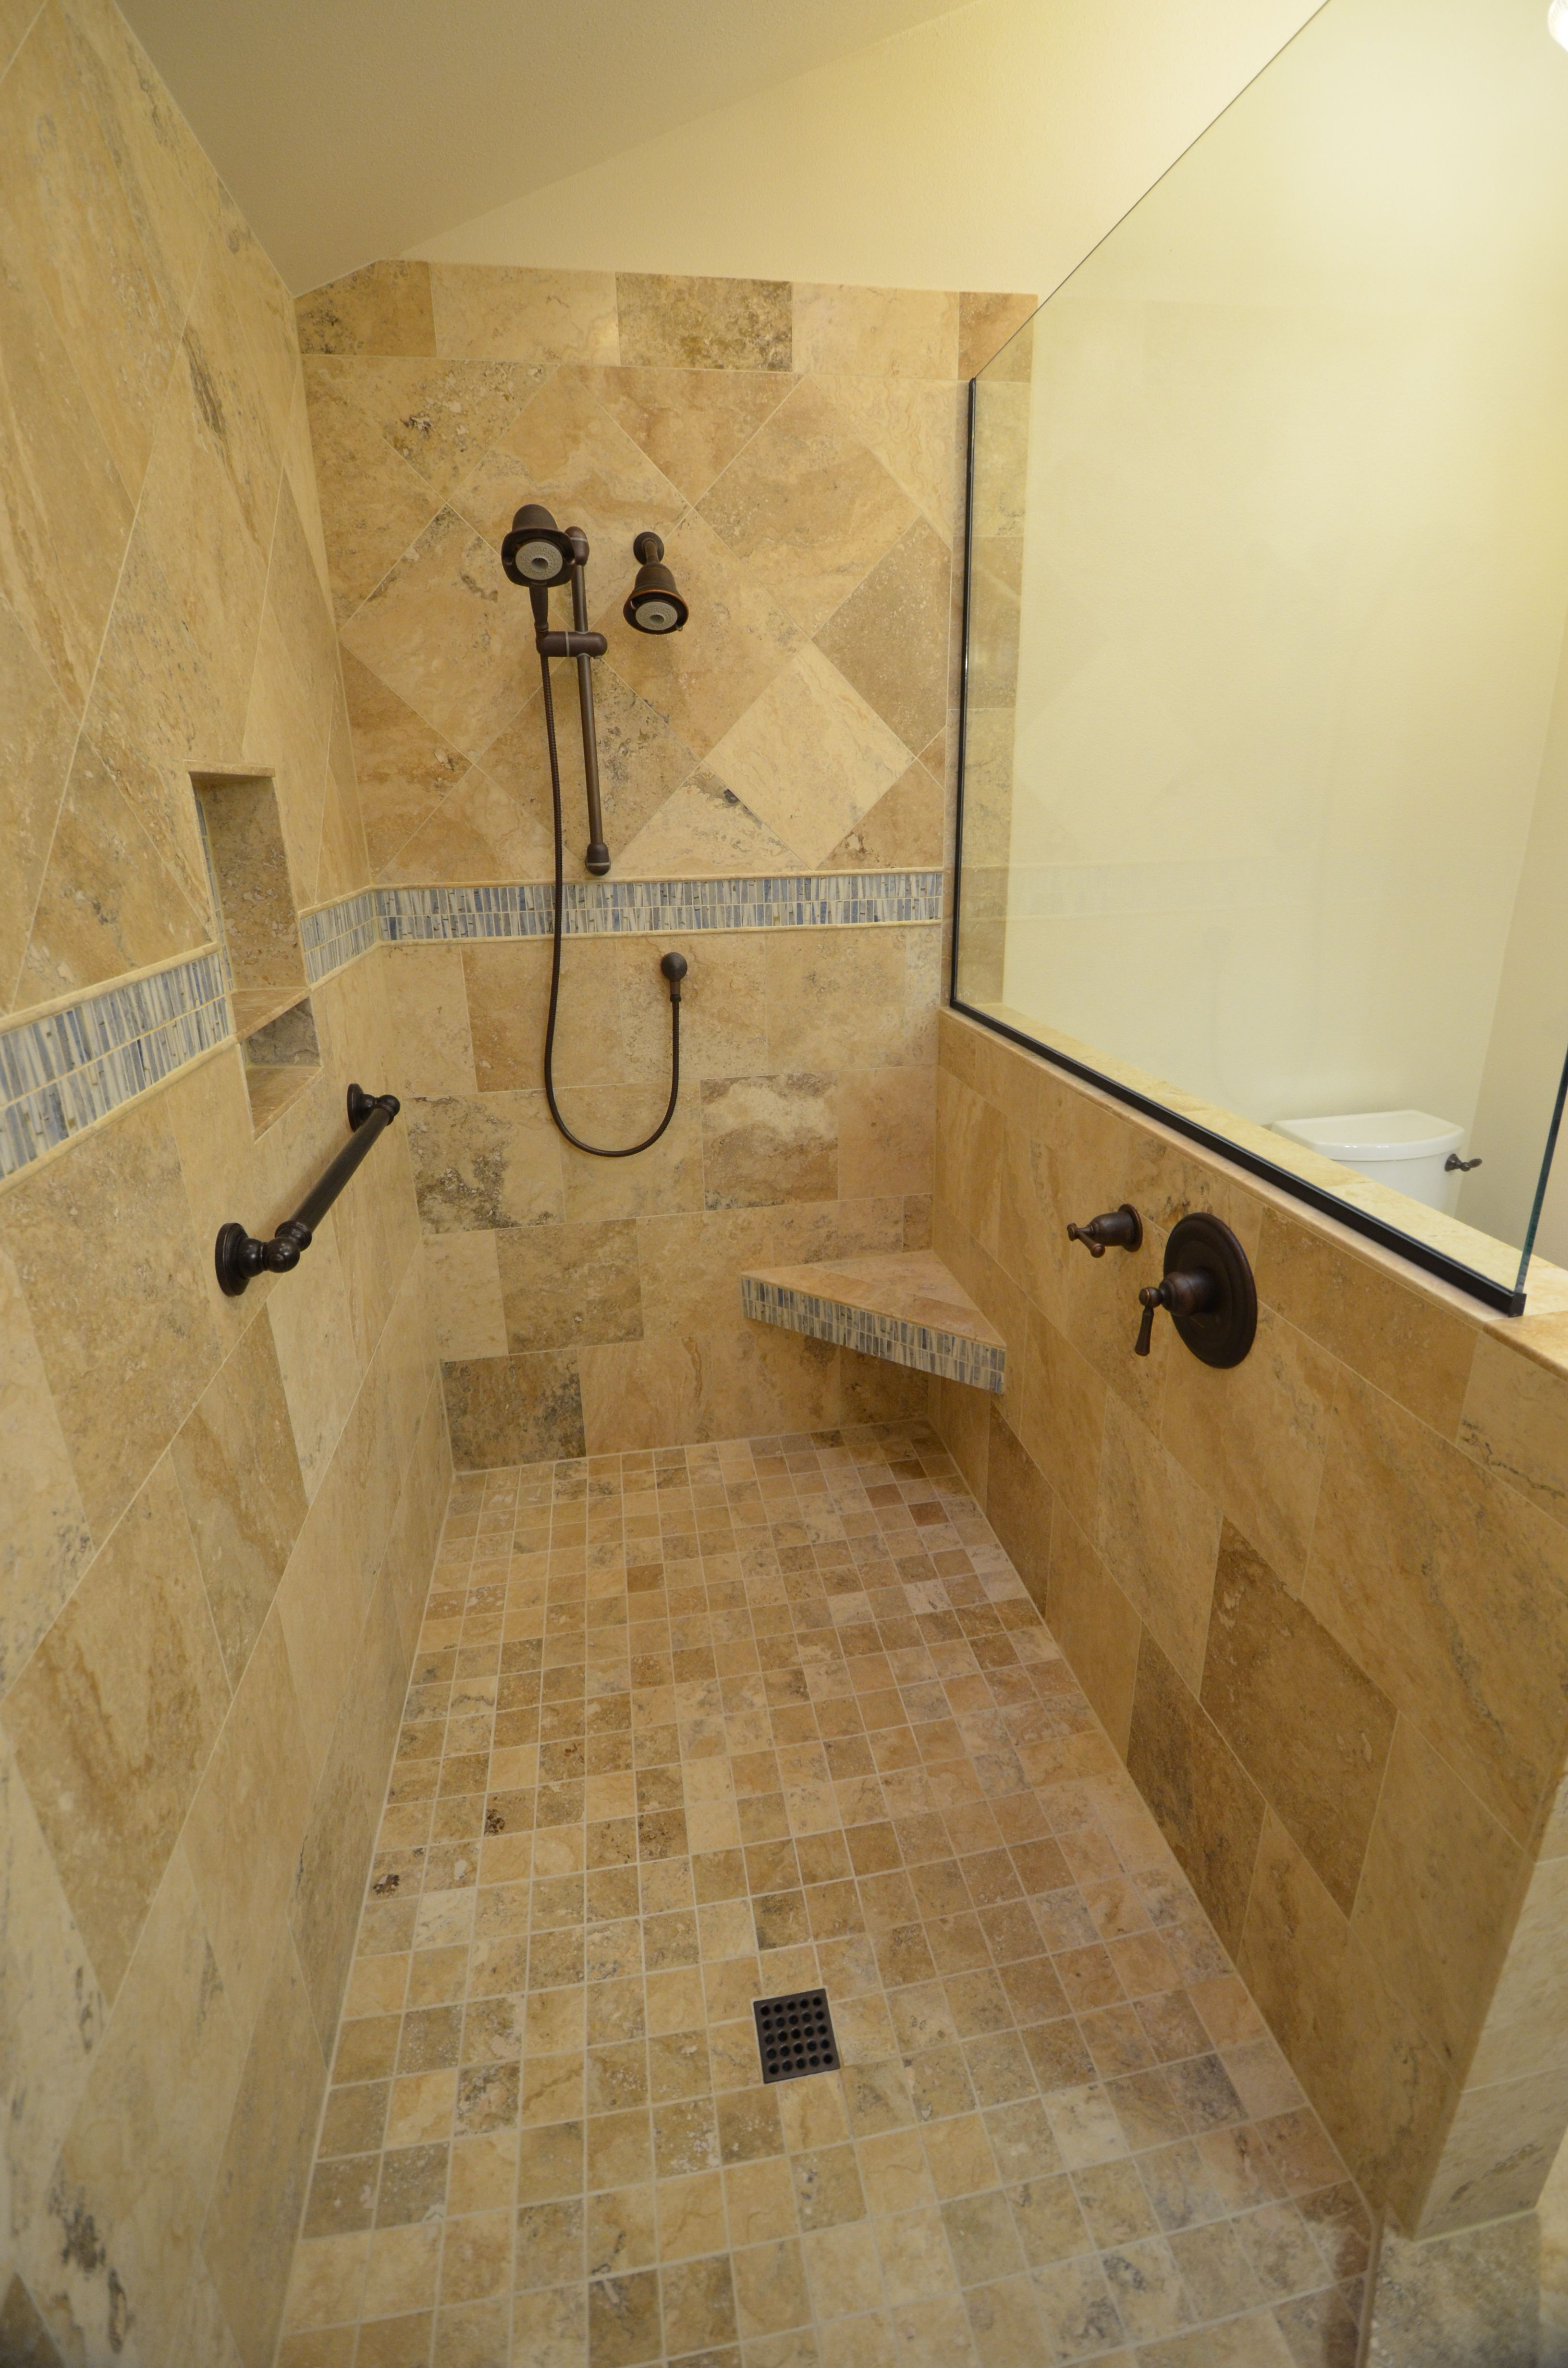 Bathroom shower designs without doors -  Tile Walk In Showers Without Doors